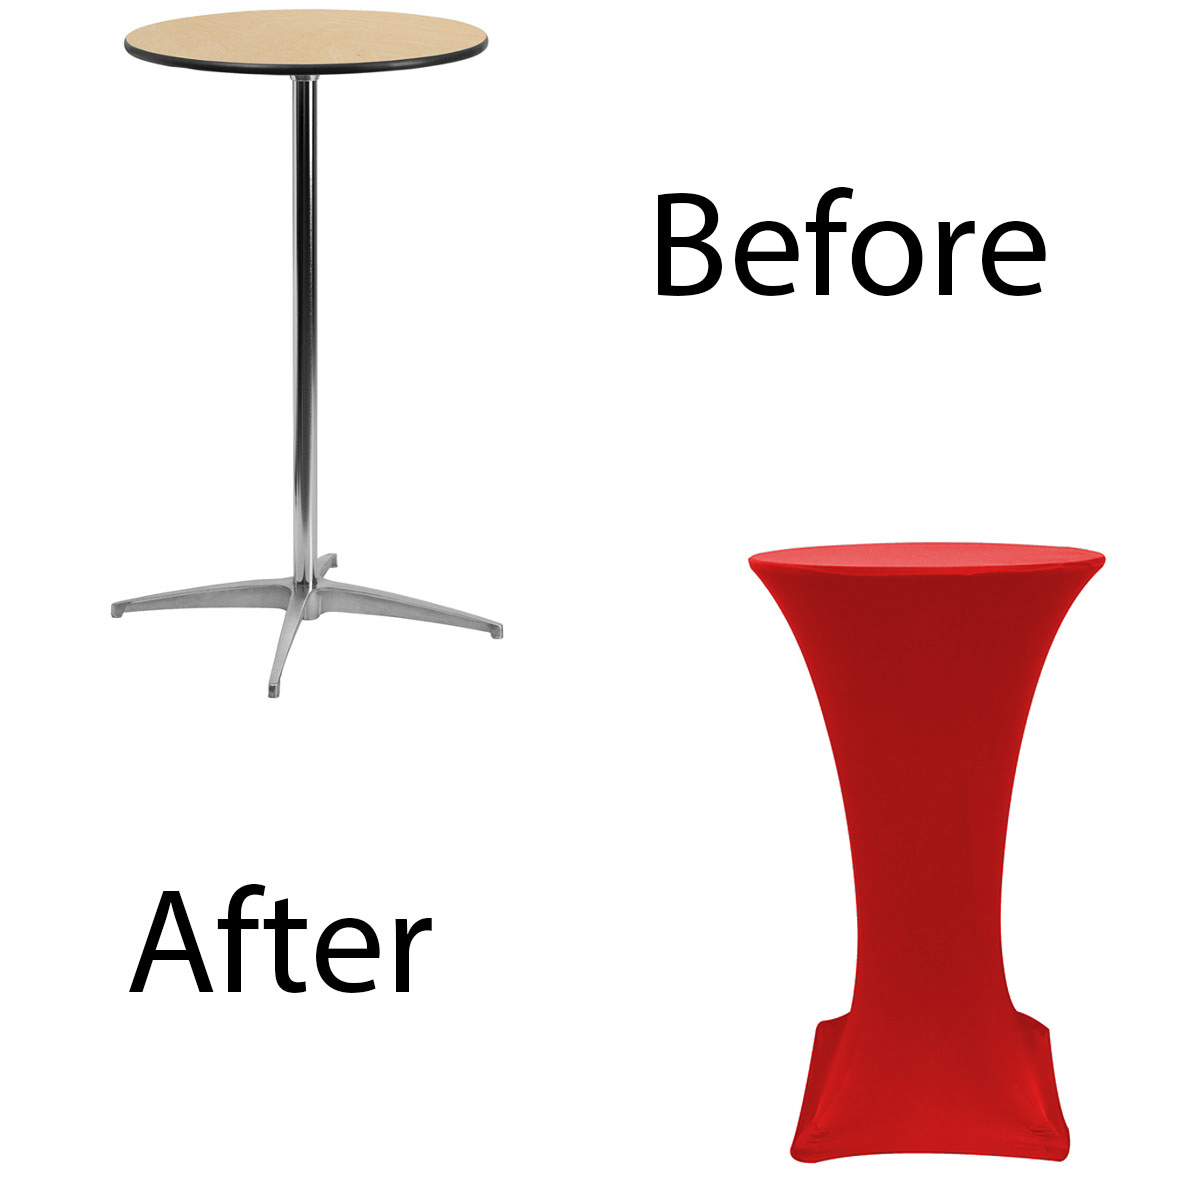 24-inch-highboy-cocktail-spandex-table-covers-red-before-after.jpg